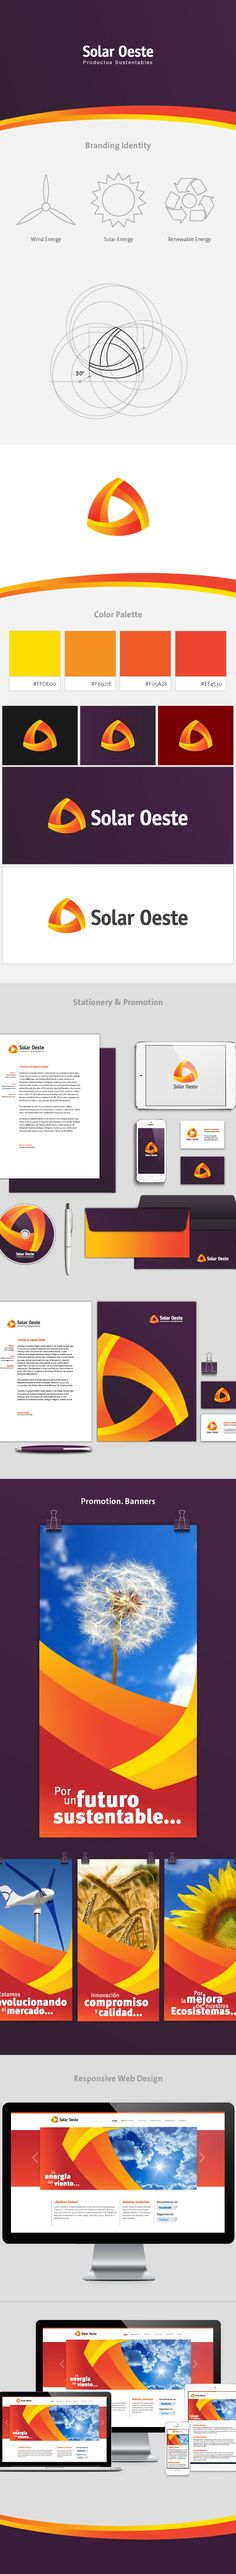 Solar Oeste is a company dedicated to selling sustainable products and promote the use of renewable energies.We work in Branding Identity, Stationery Promotion & Web Development and Responsive Design.